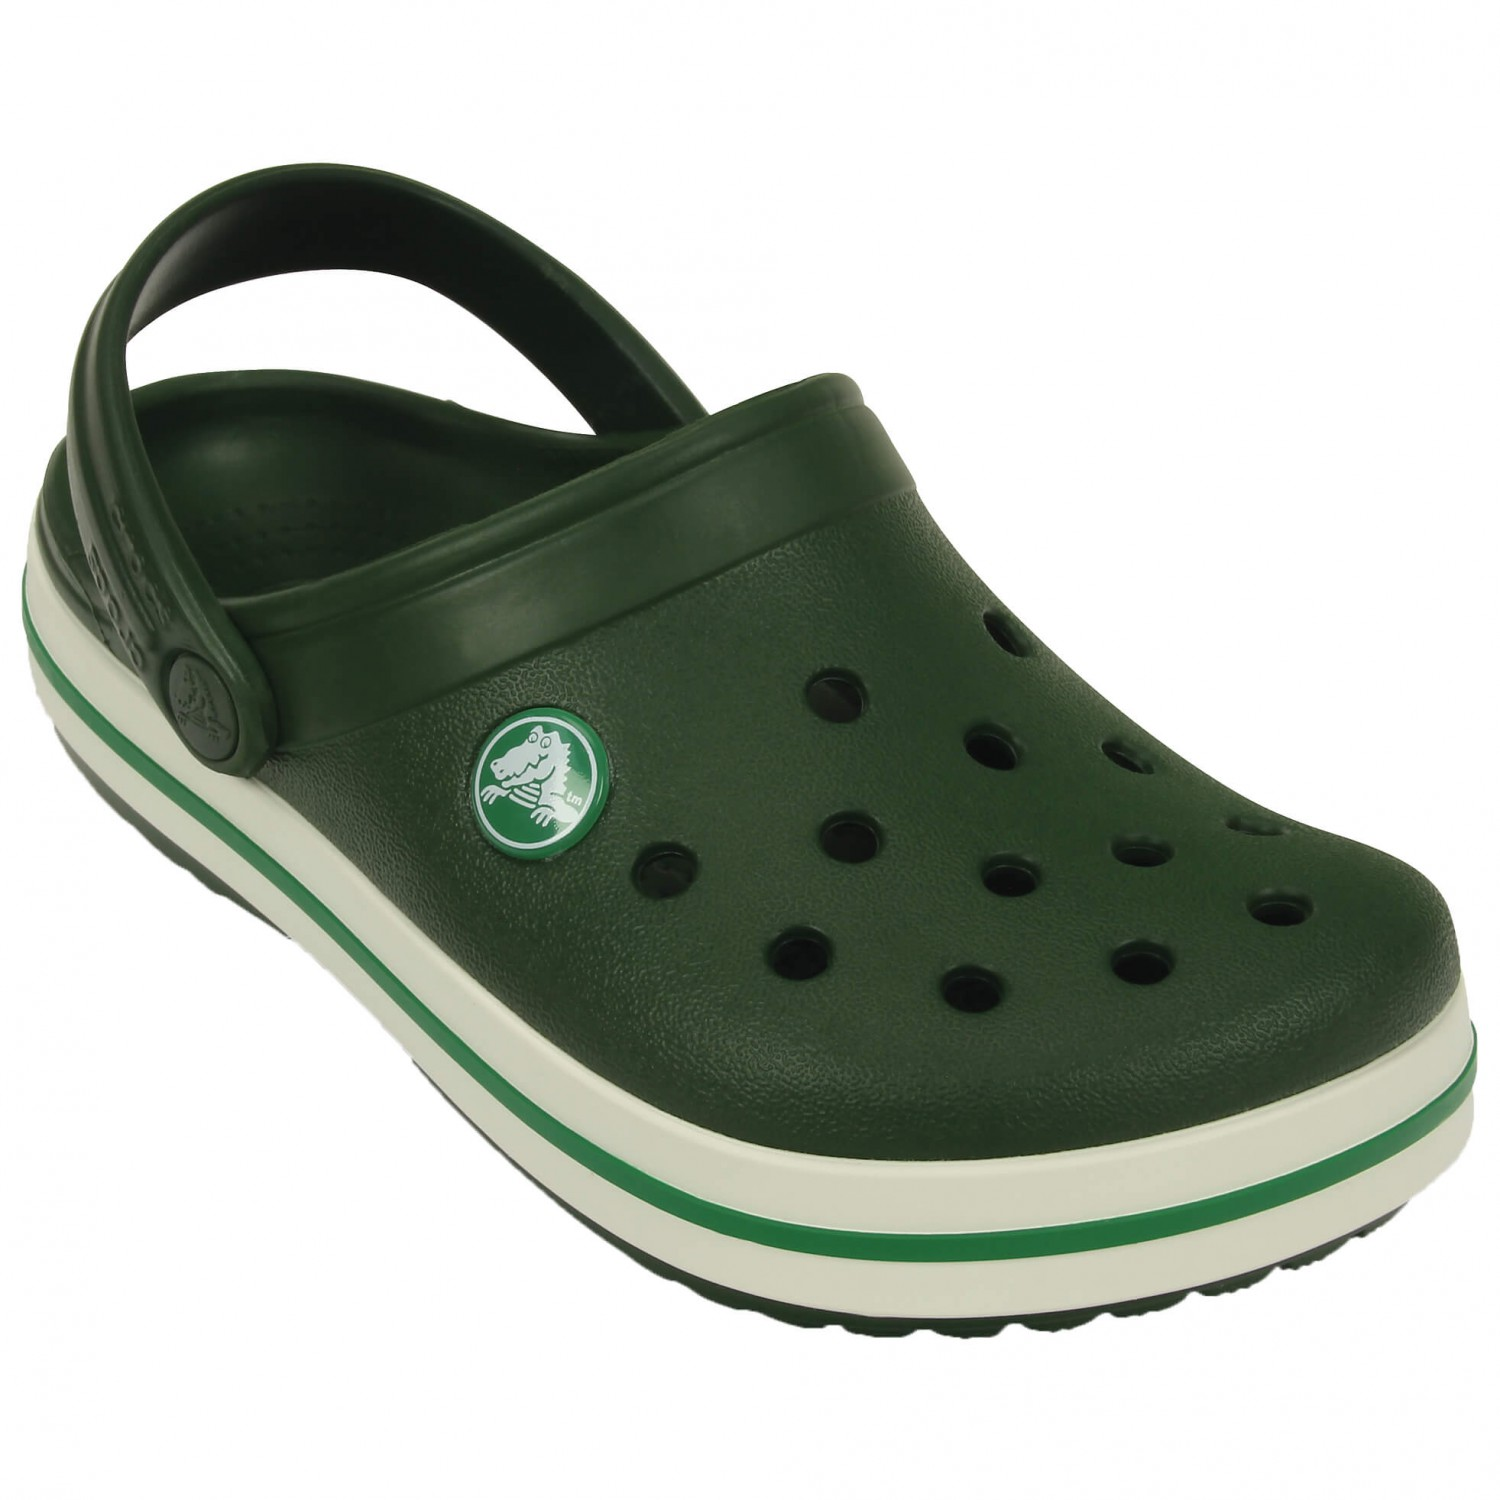 Yahoo! Shopping is the best place to comparison shop for Kids Crocs. Compare products, compare prices, read reviews and merchant ratings.